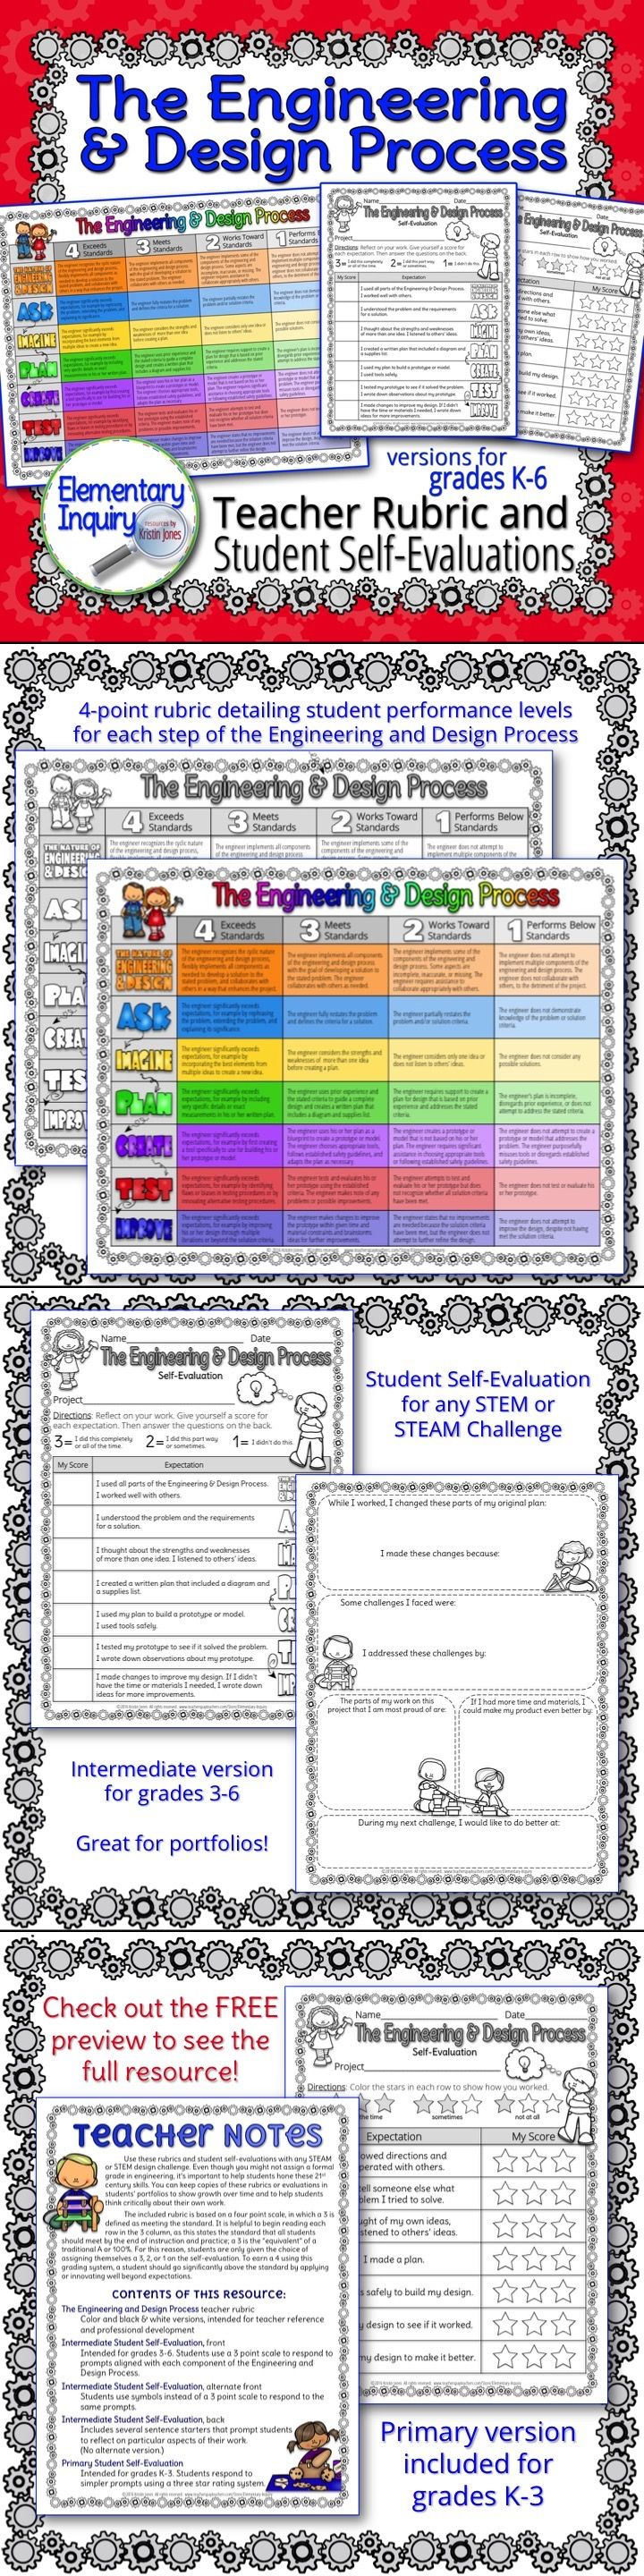 Shirt design rubric - 4 Point Rubric And Student Self Evaluations For Each Step Of The Engineering And Design Process